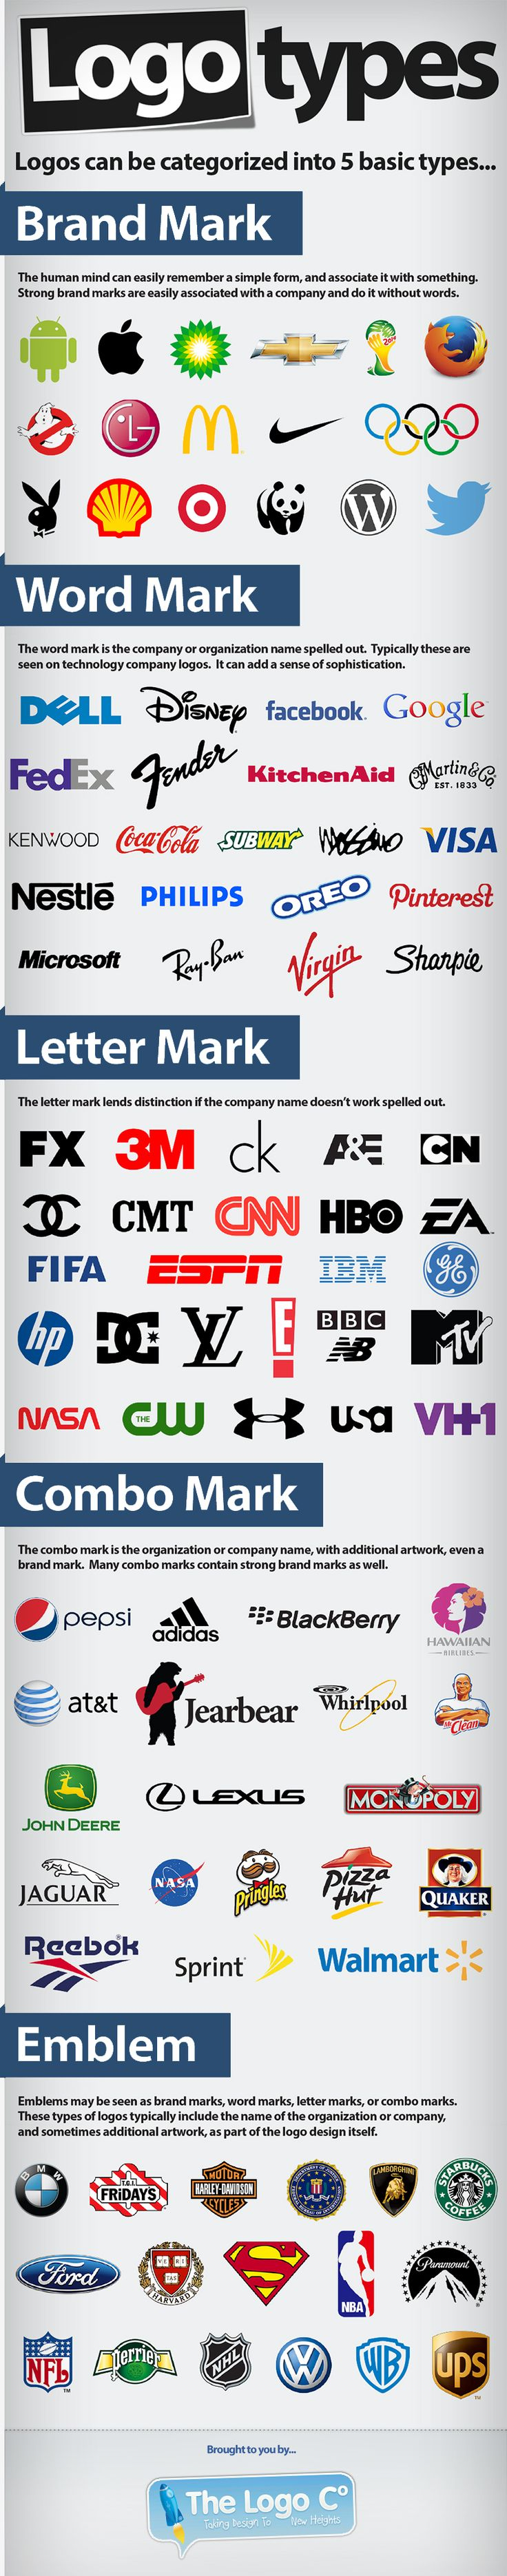 The 5 Logo Styles – What's Yours?